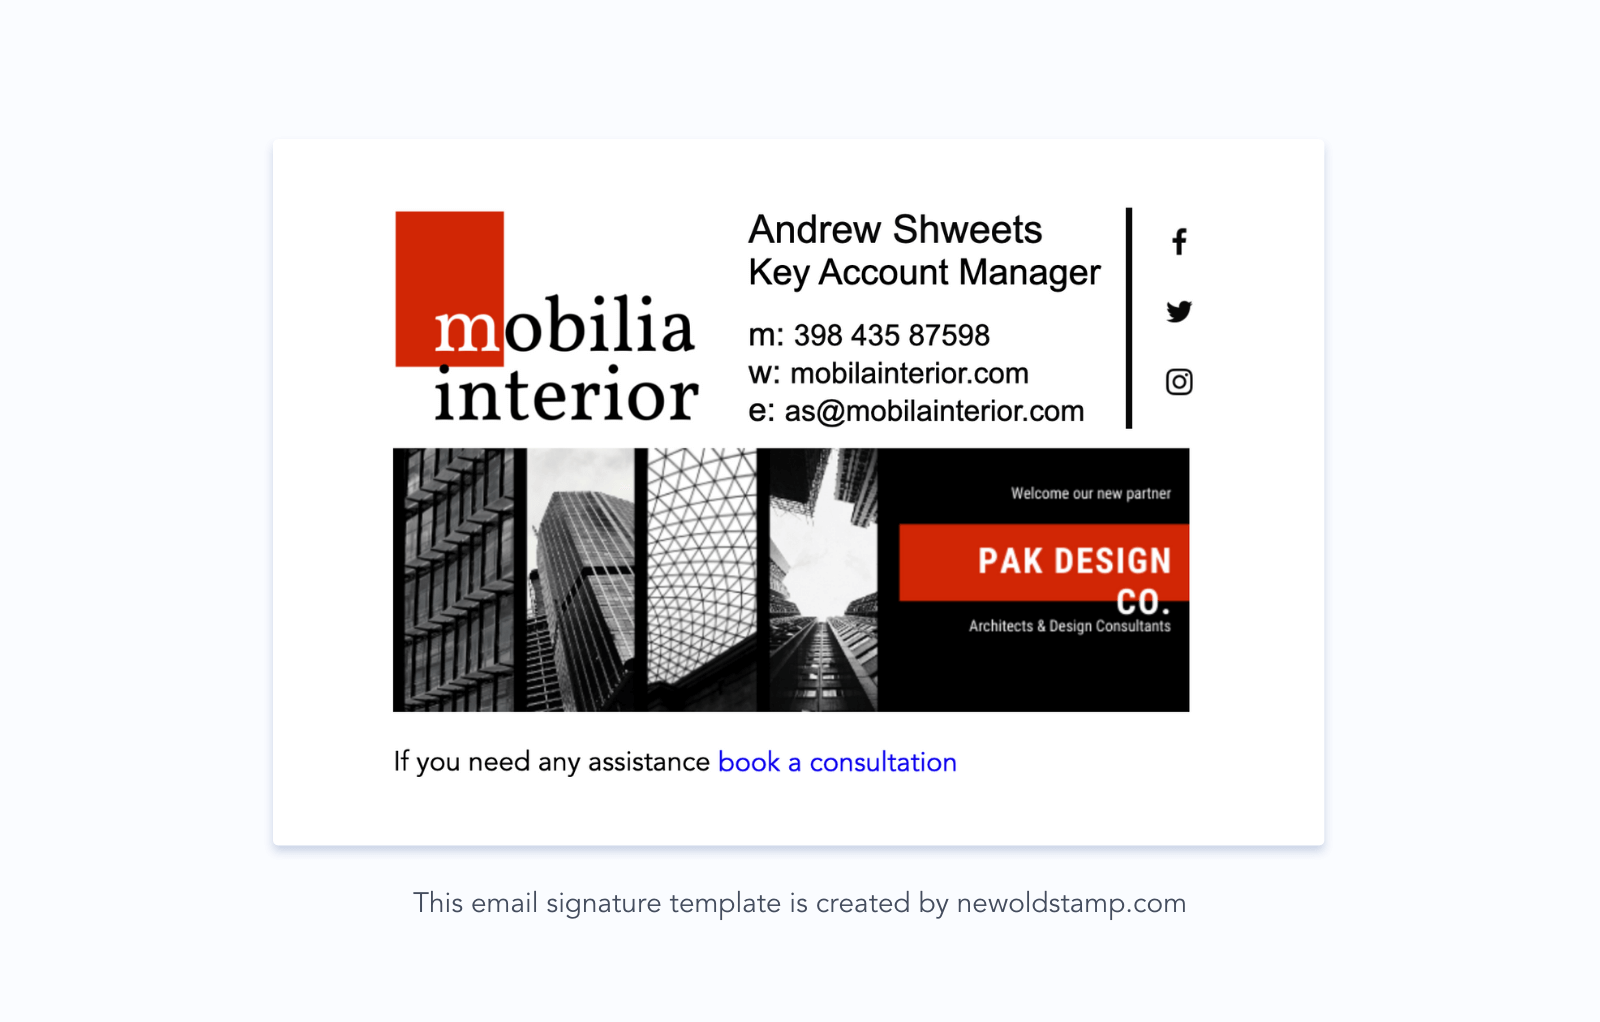 Email signature example with a logo